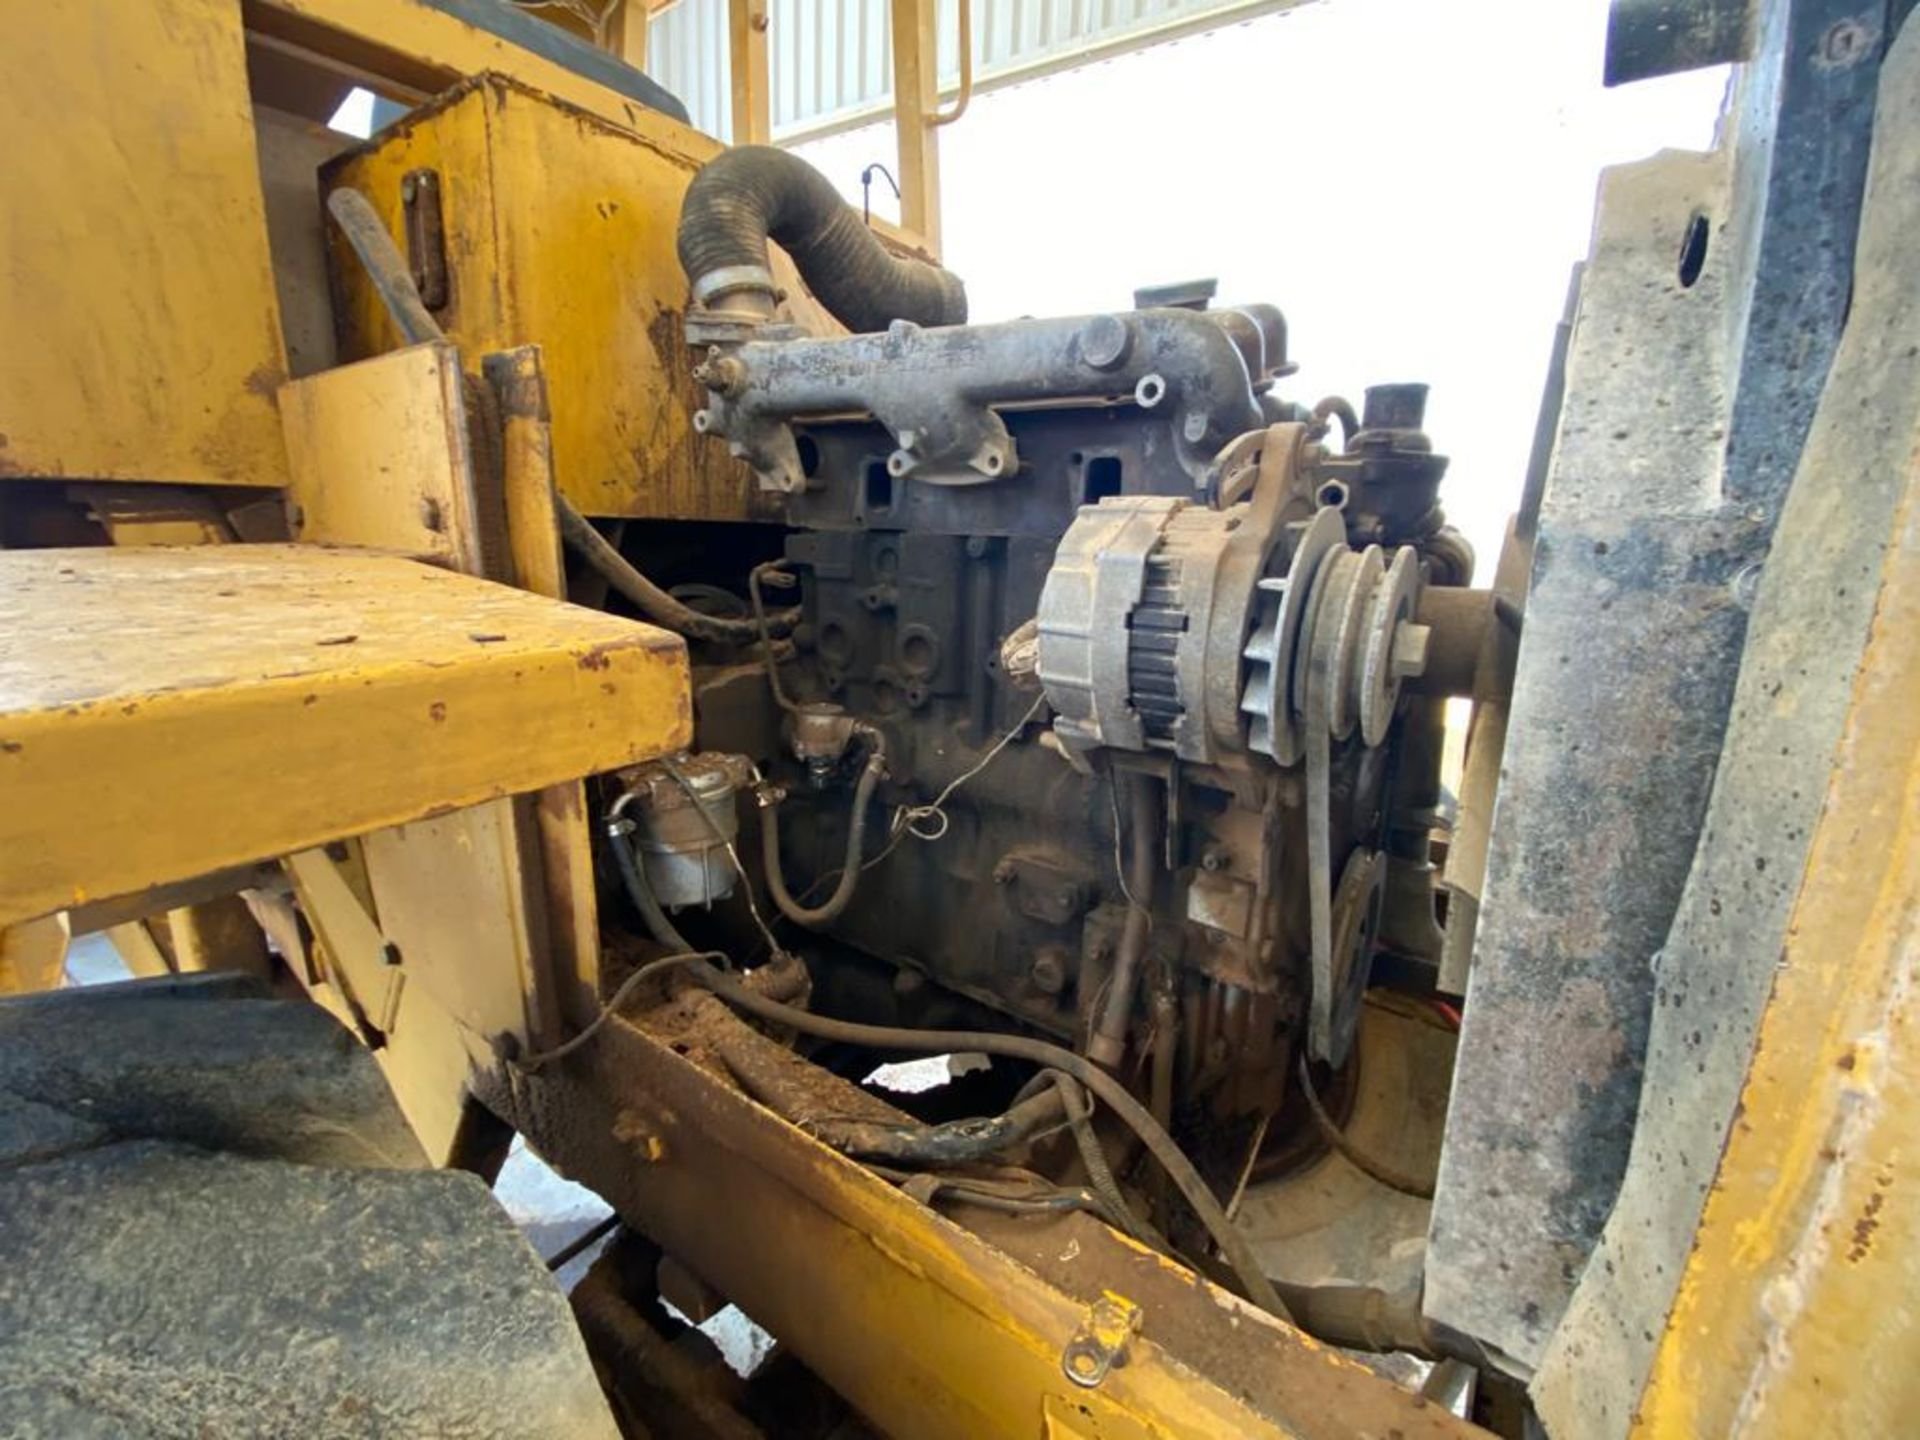 Volvo BM TYPE L 30 Michigan Front Loder, automatic transmission - Image 36 of 53